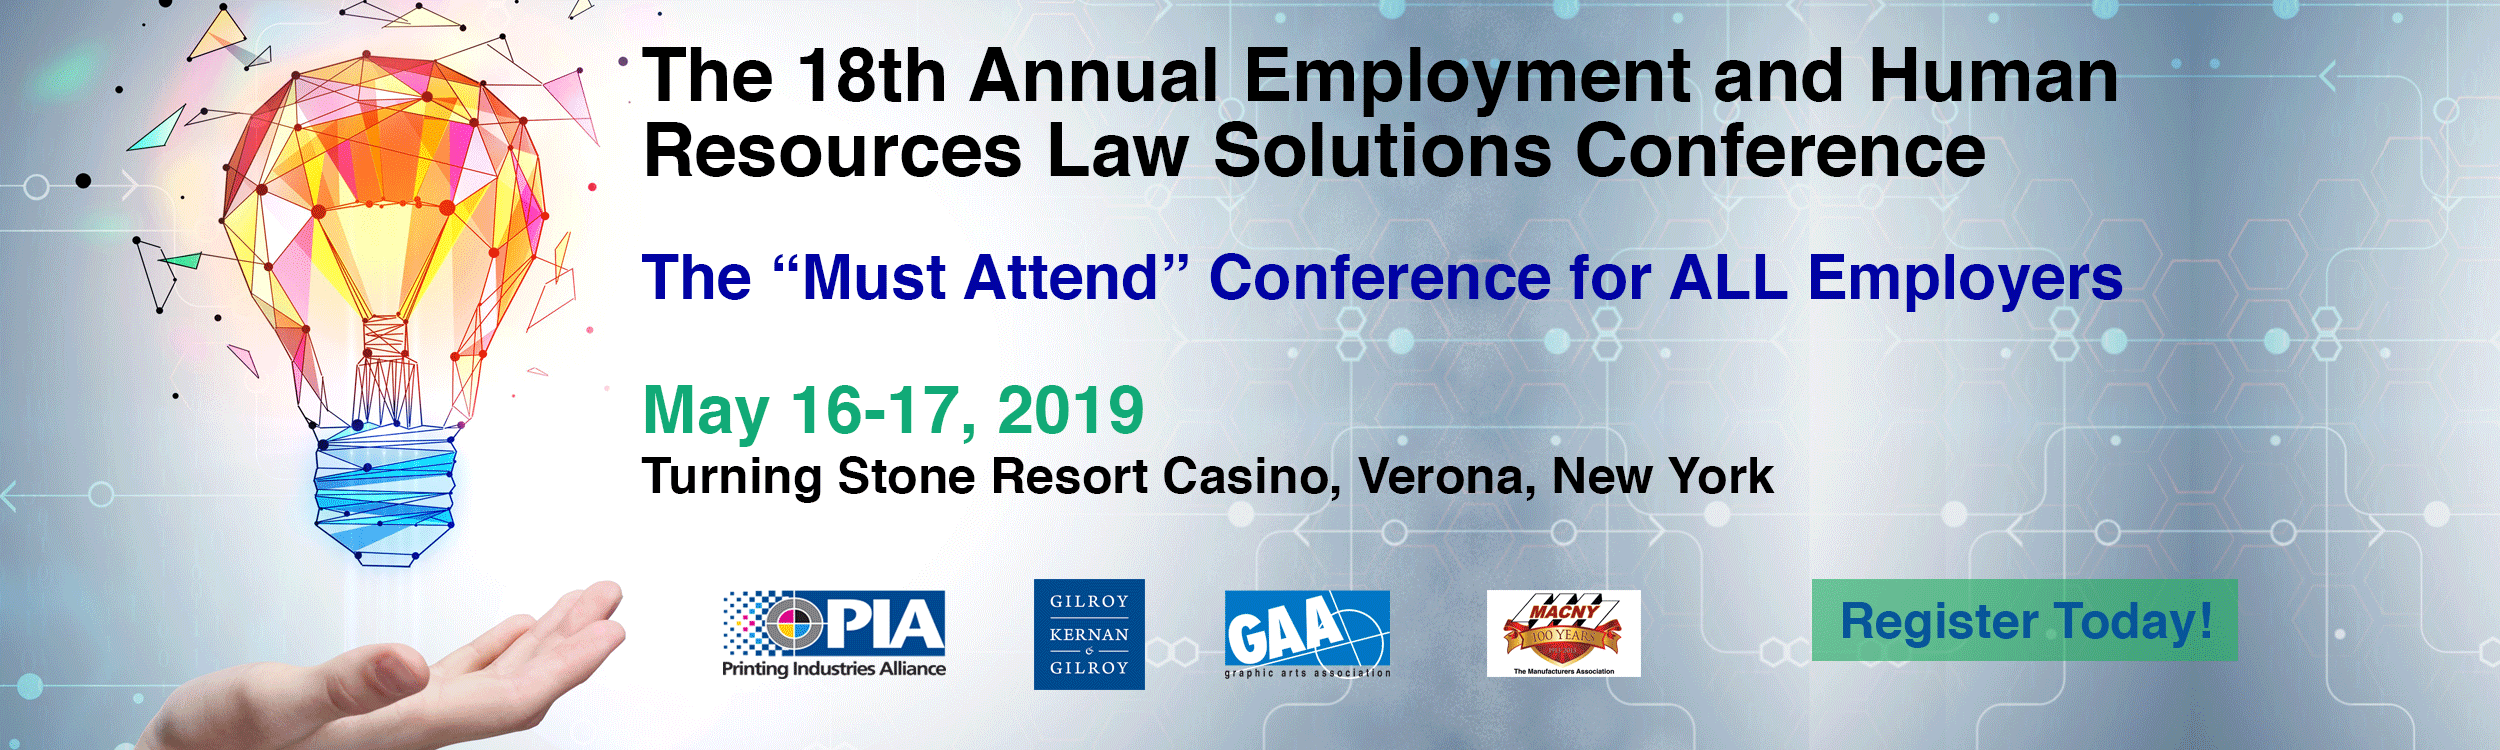 HR_Conference-2019